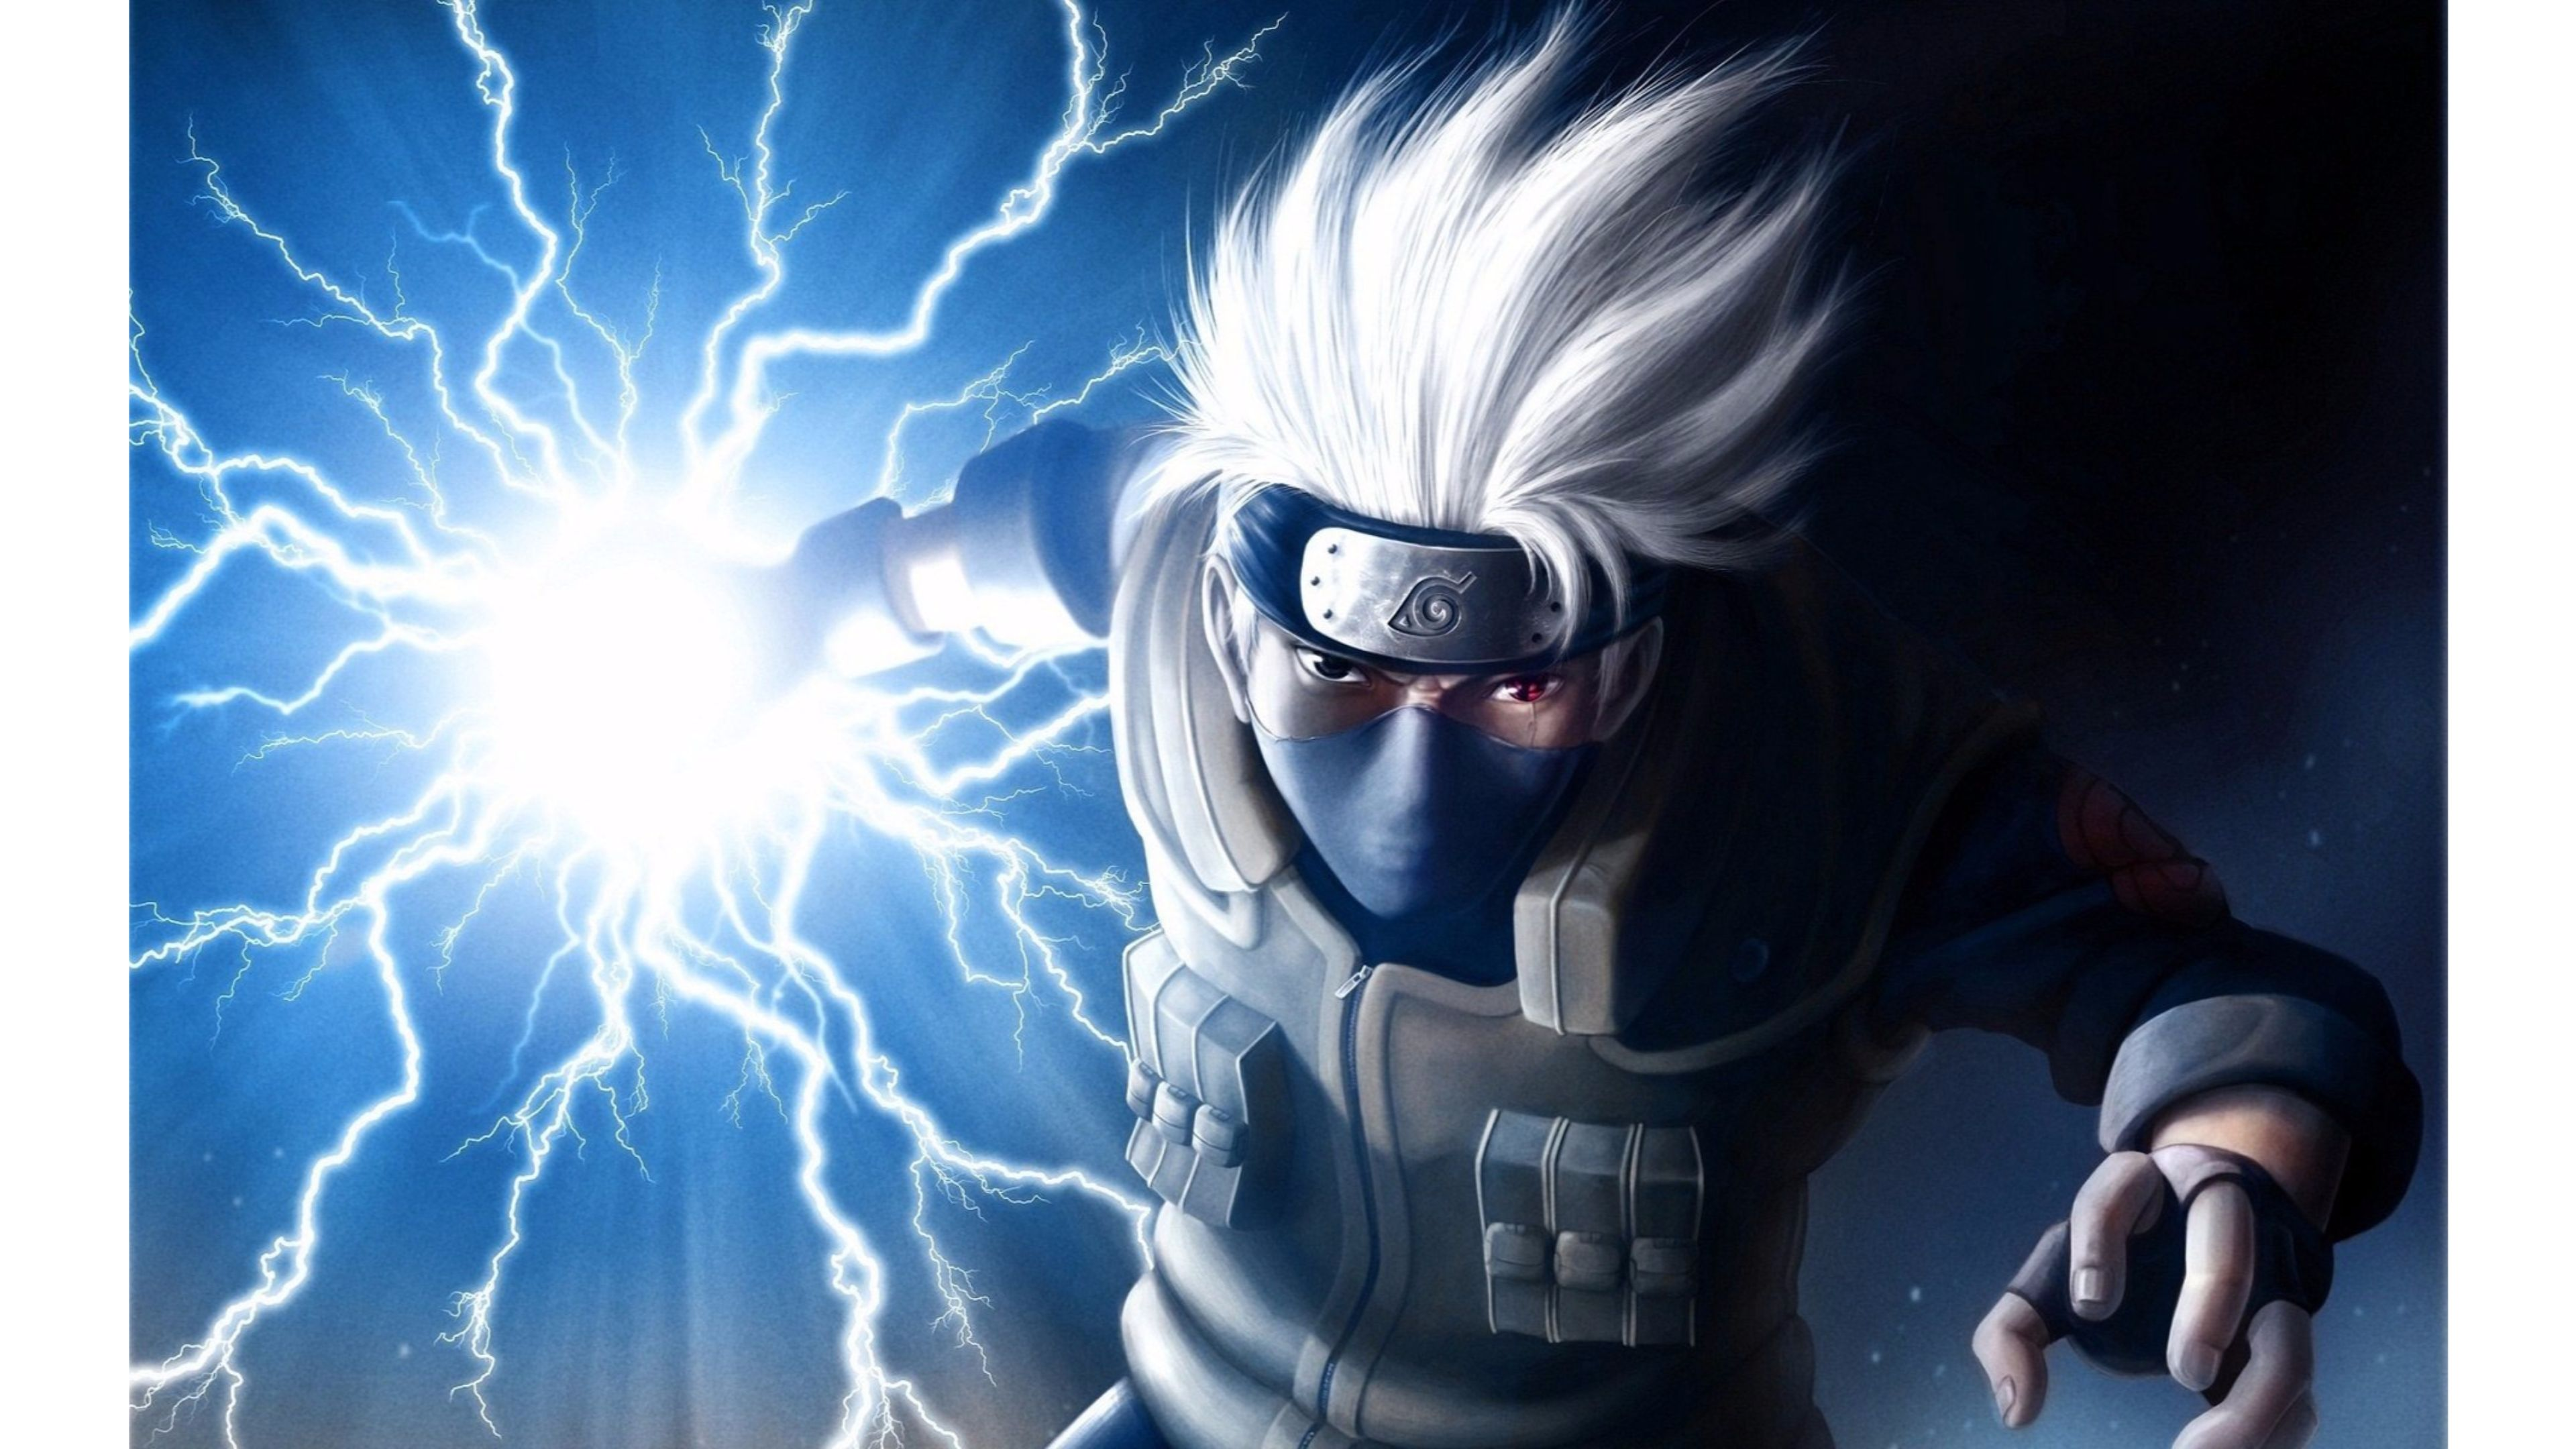 Free download Lightning 2016 4K Anime Wallpaper 4K ...